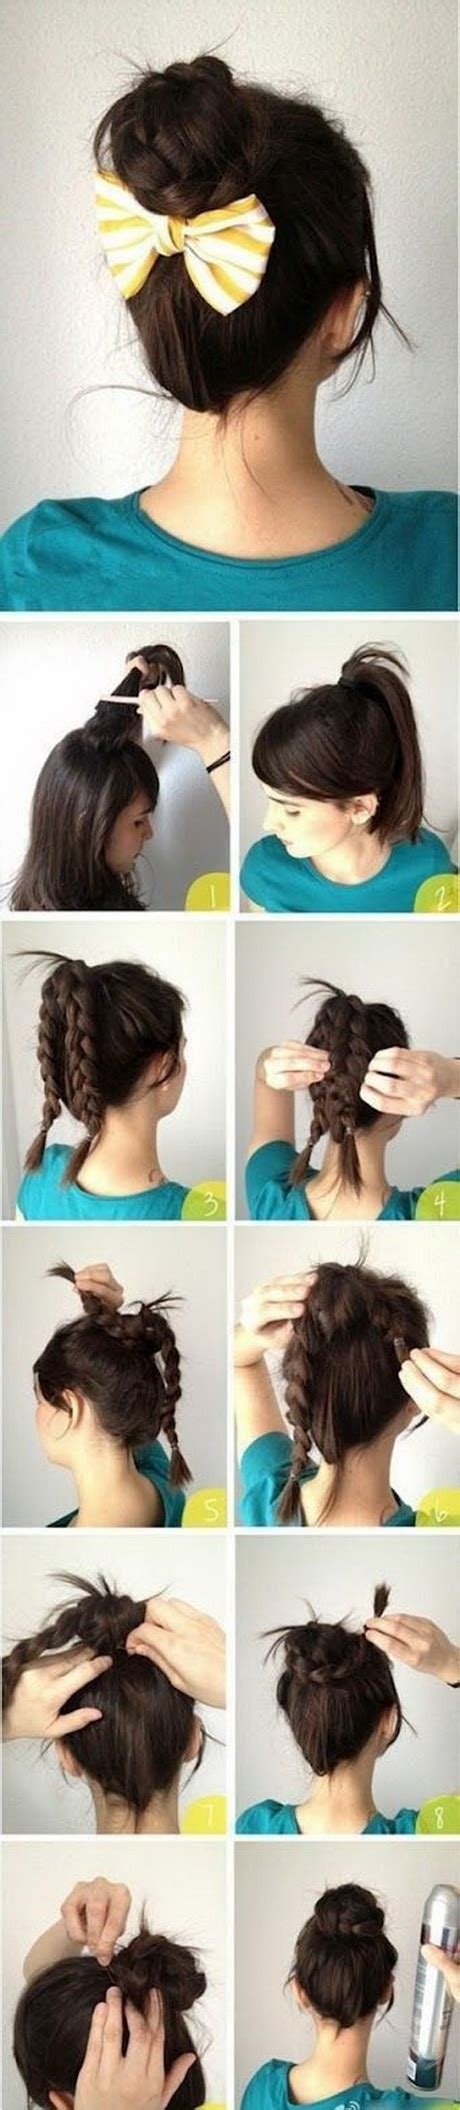 haircuts you can do at home hairstyles you can do at home